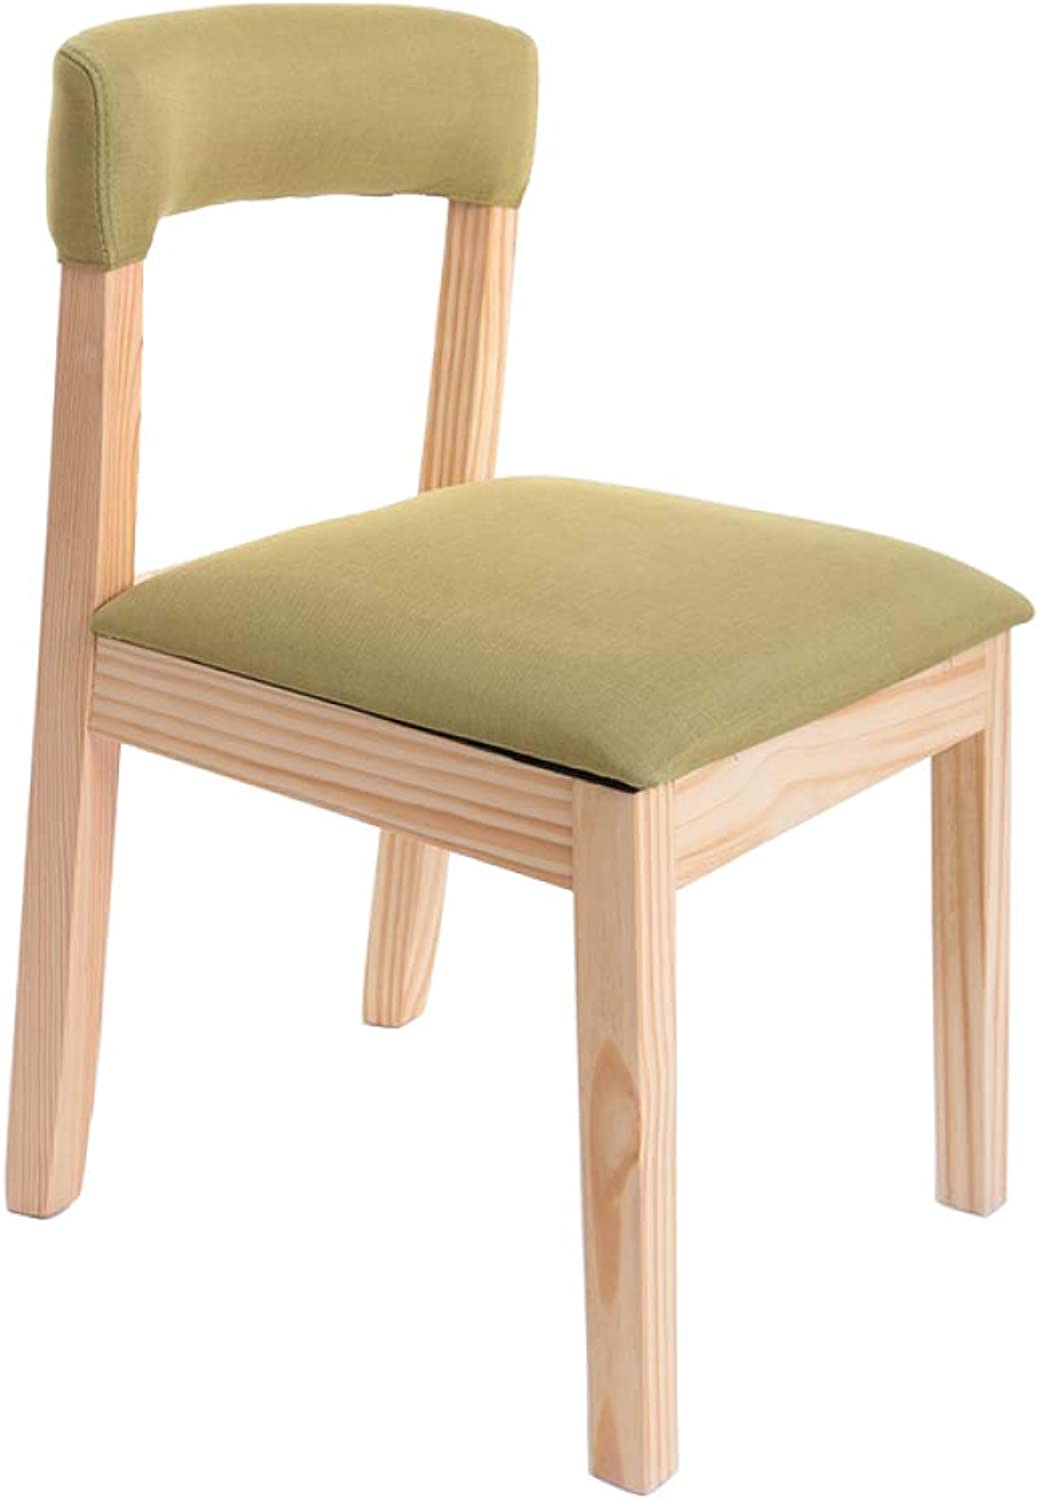 SSHHI Chair,Solid Wood Cotton and Linen Detachable Washable Stable Chairs,Durable Living Room Restaurant Study